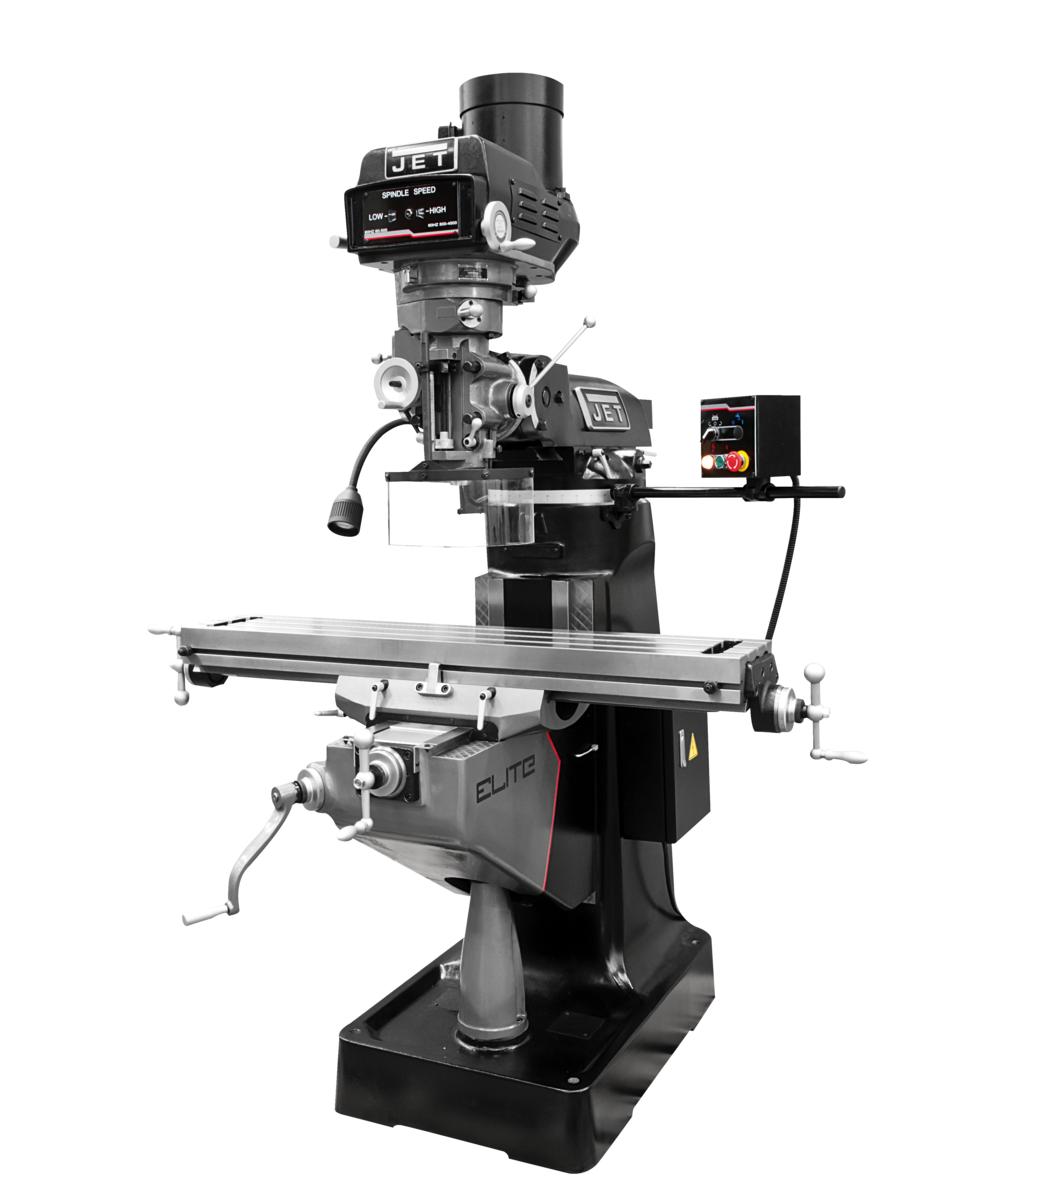 ETM-949 Mill with 3-Axis ACU-RITE 203 (Quill) DRO and Servo X, Y-Axis Powerfeeds and USA Air Powered Draw Bar